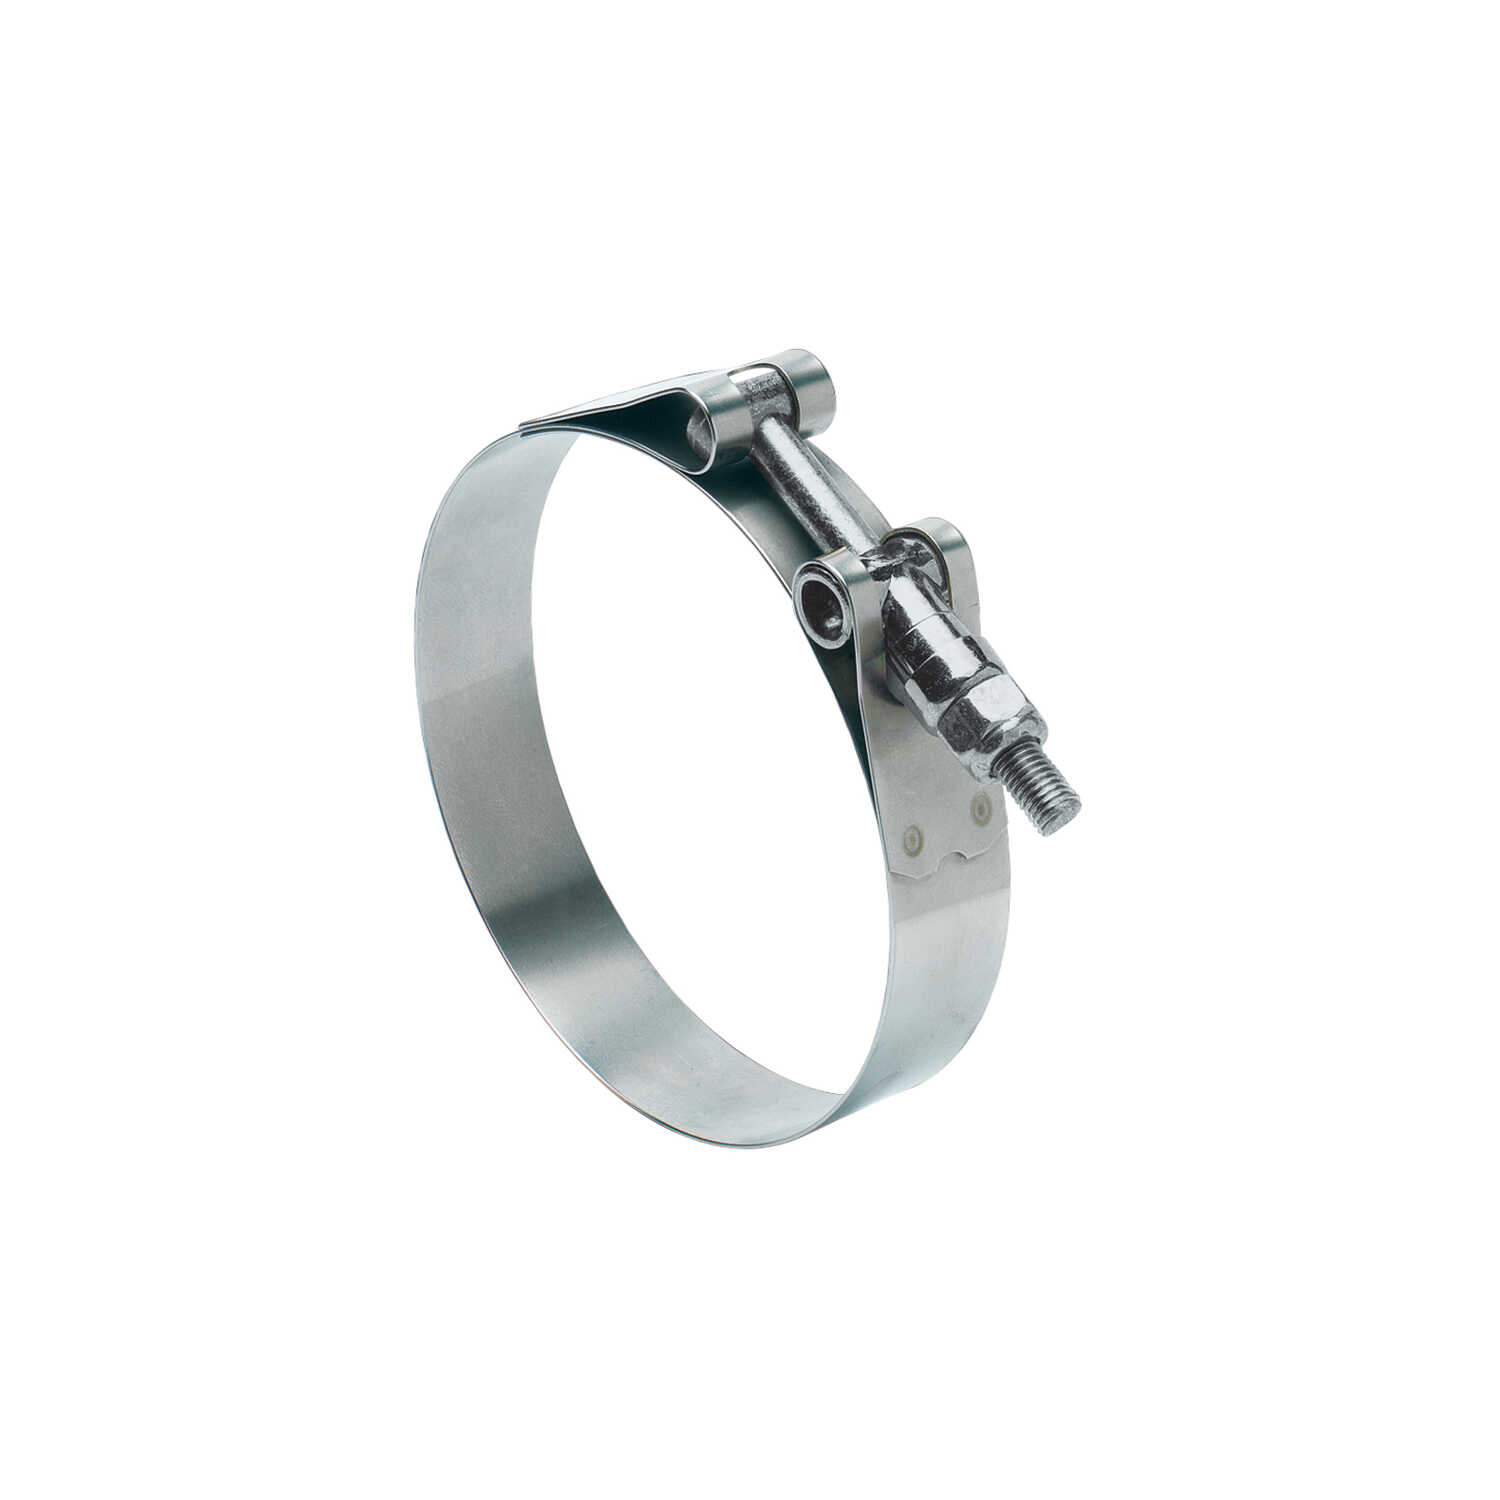 Ideal  Tridon  4-1/4 in. 4-9/16 in. SAE 425  Hose Clamp  Stainless Steel Band  T-Bolt